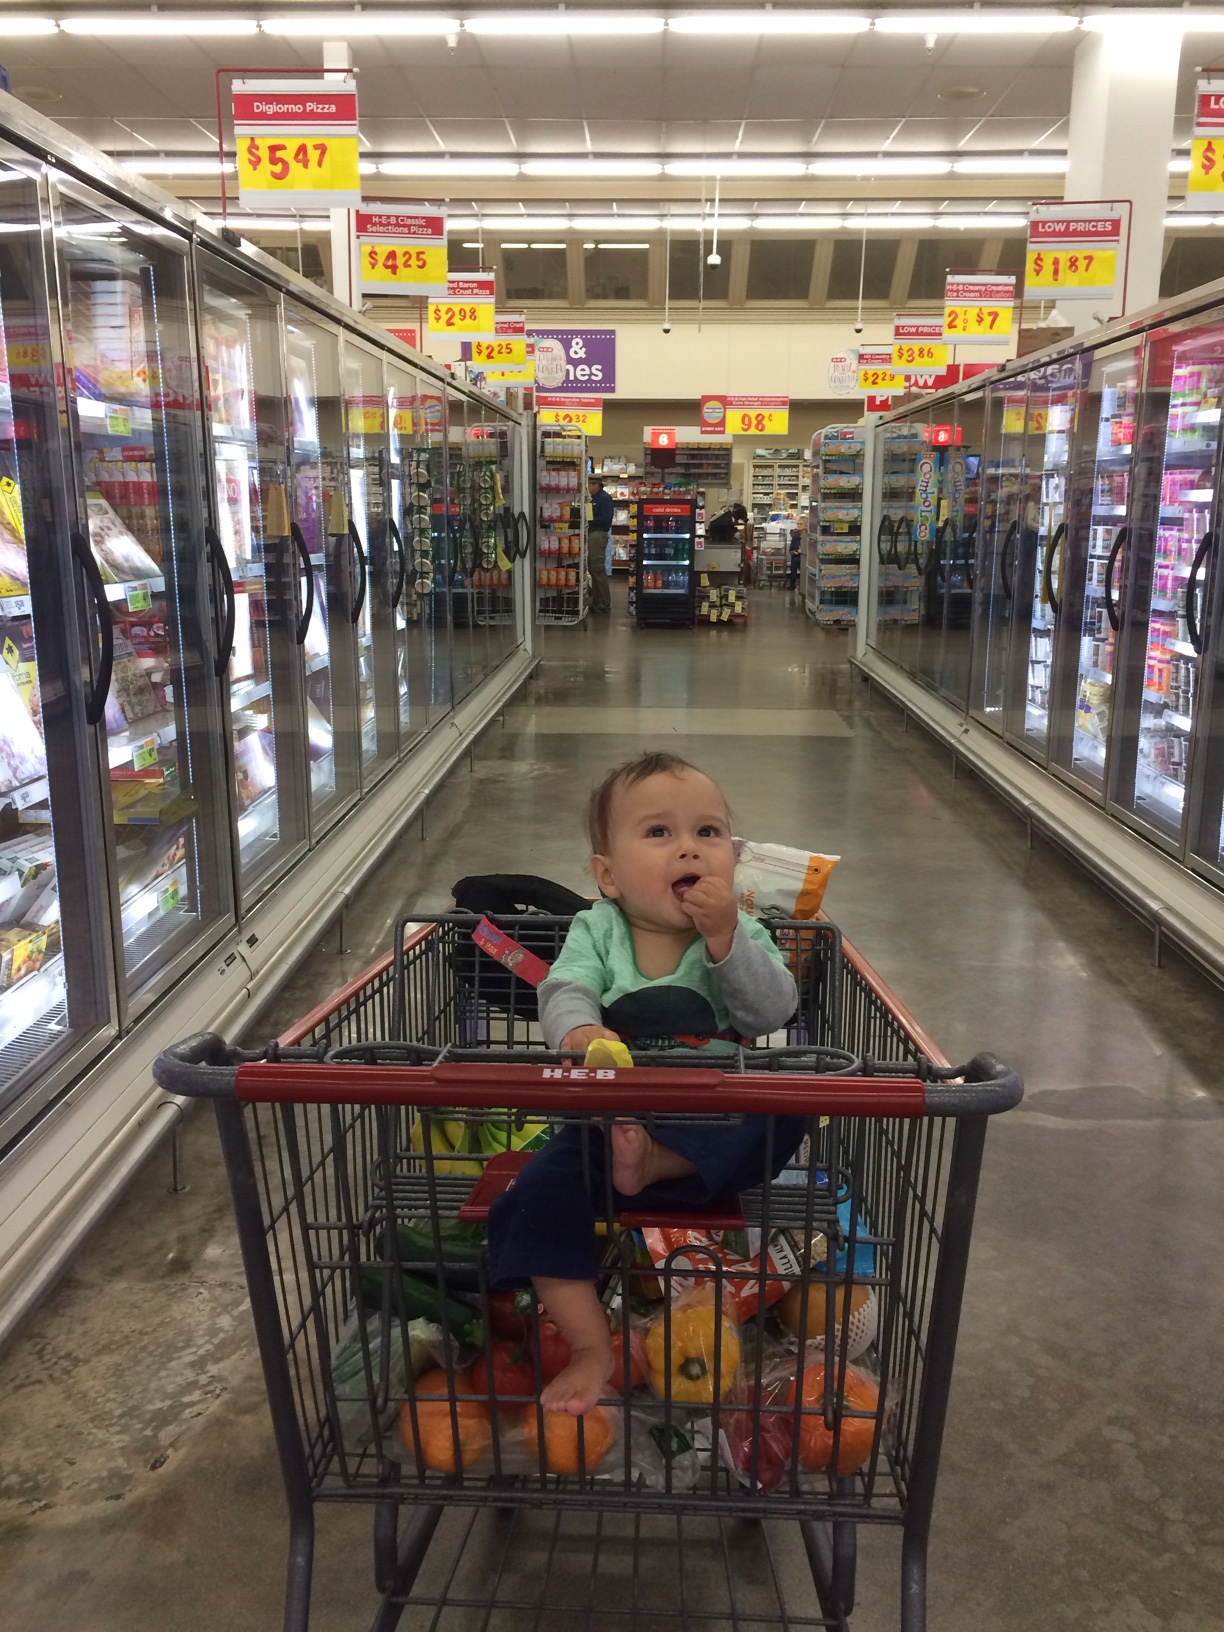 Baby boy o in cart in supermarket